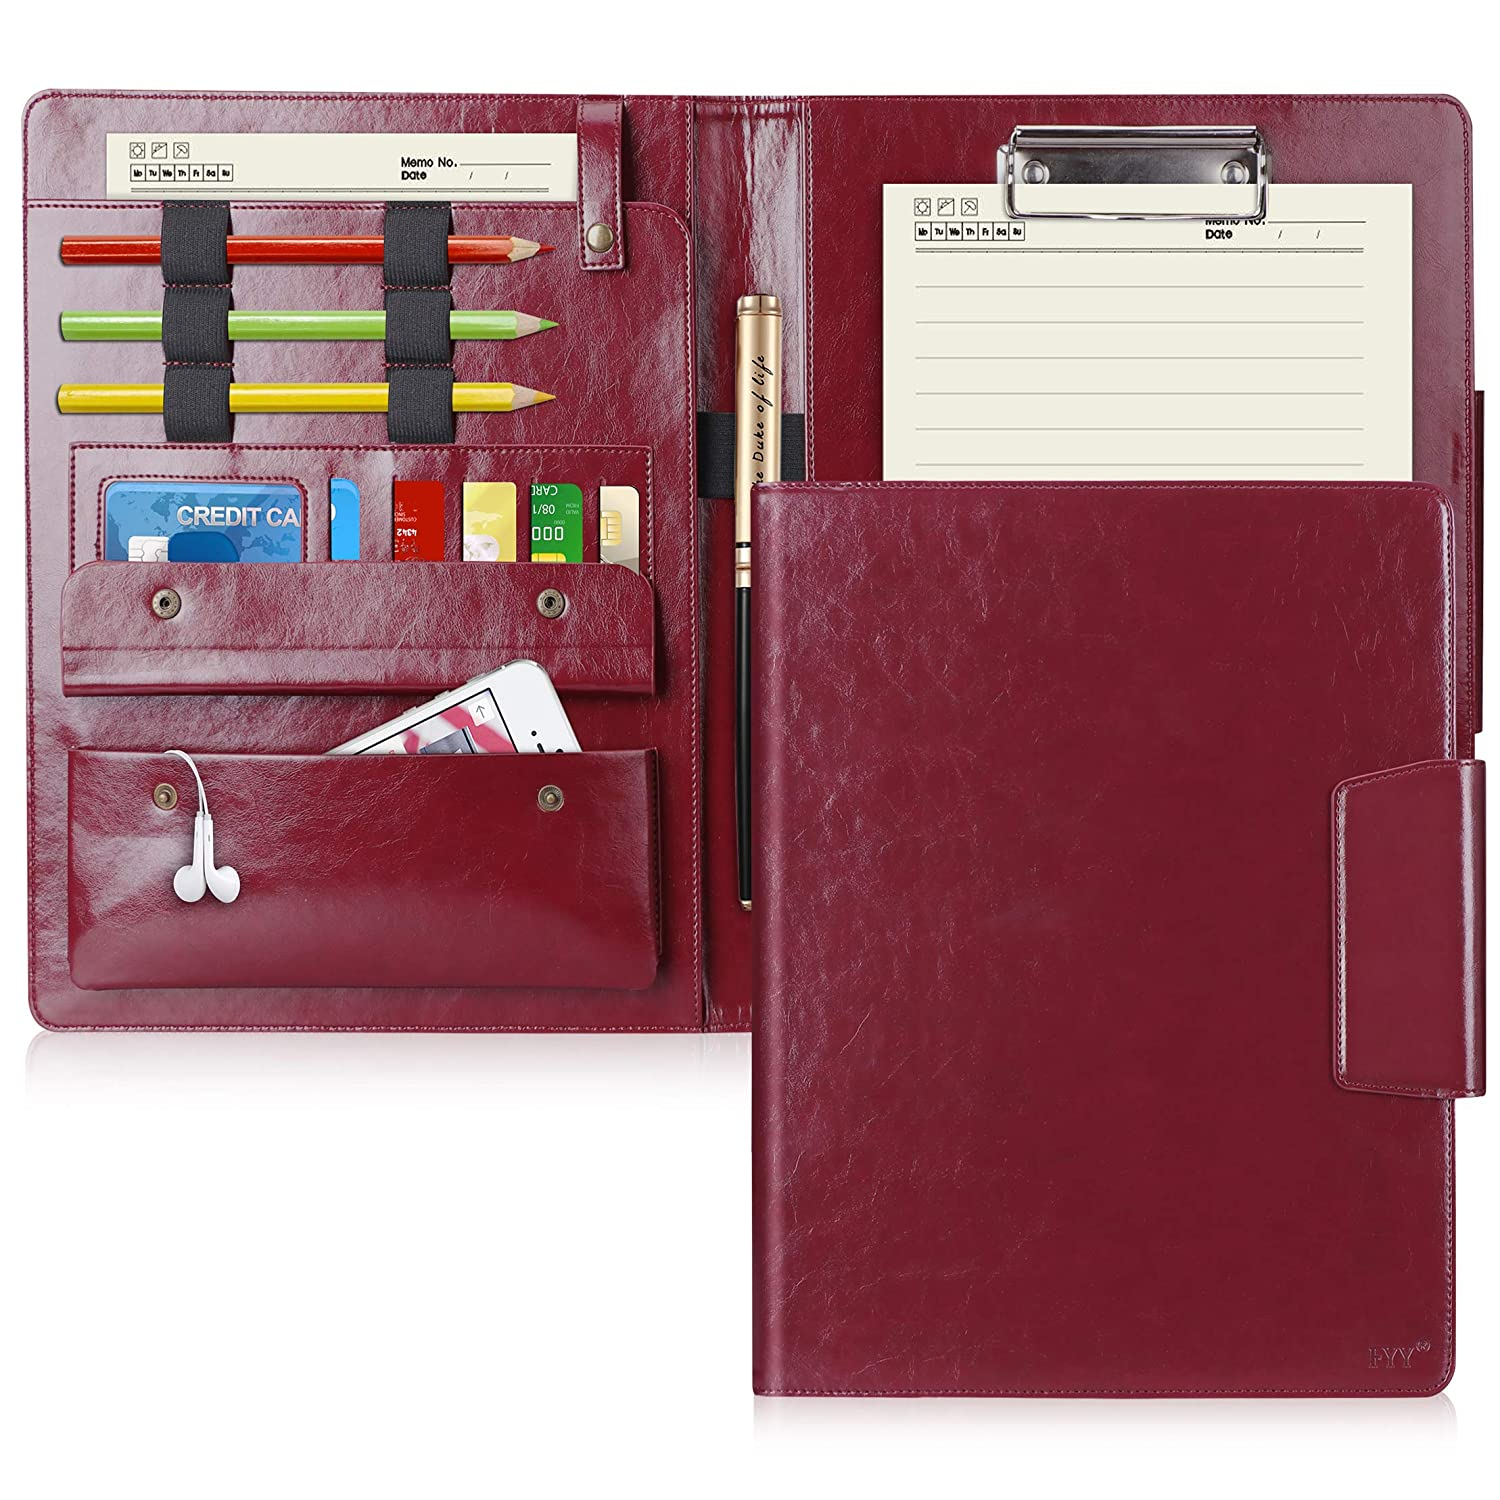 office supplies fyy padfolio leather portfolio case with card slots pockets pencil Resume Leather Portfolio Case For Resume